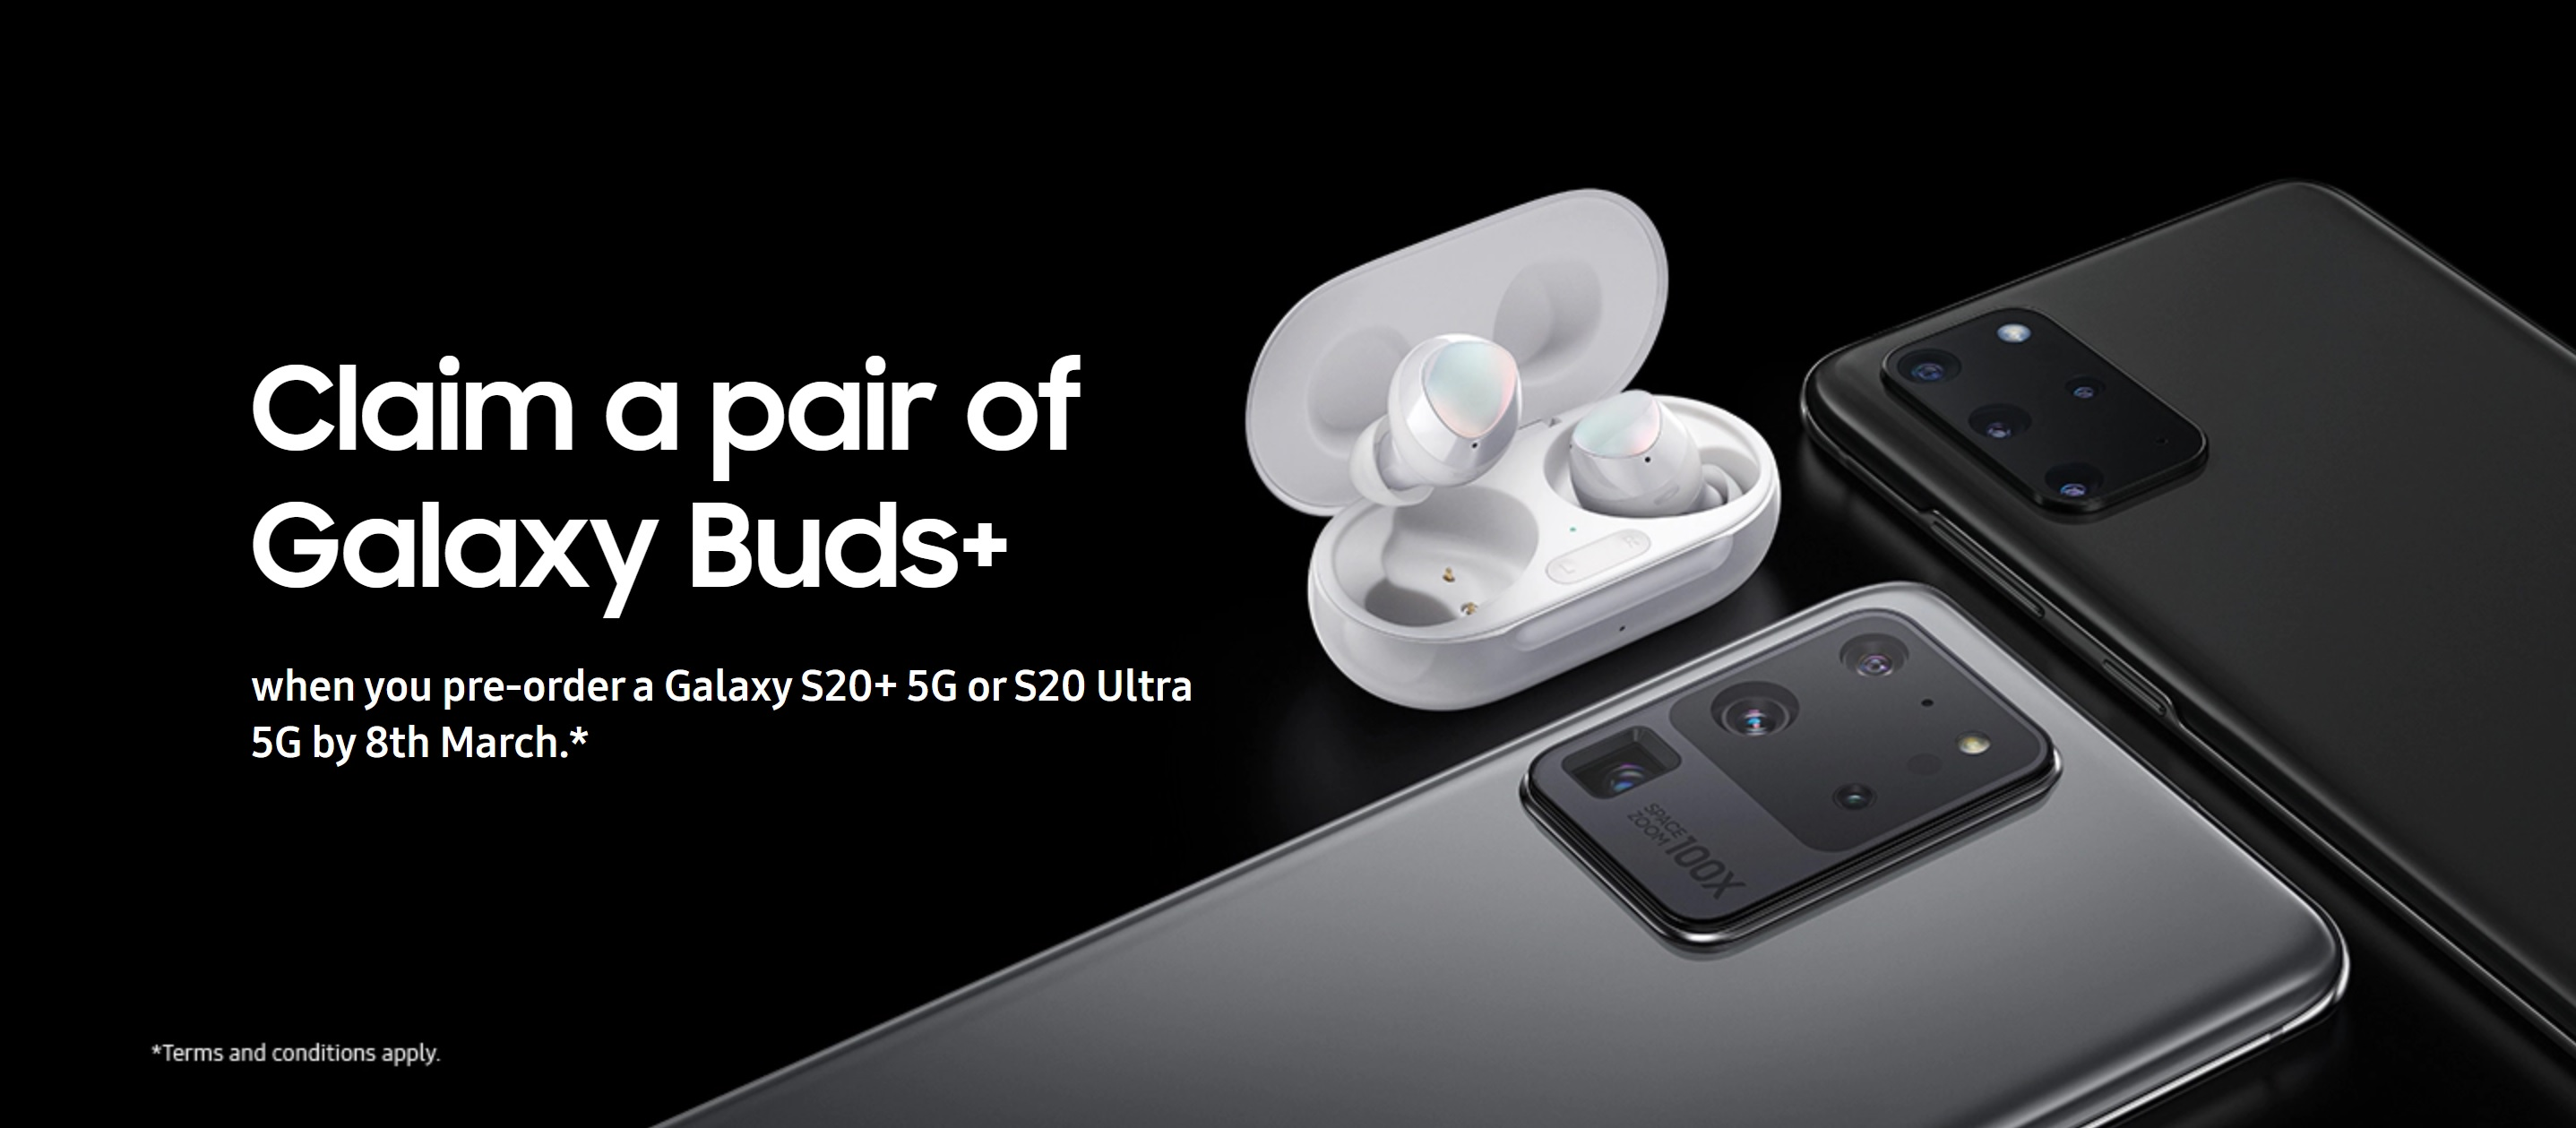 Samsung S20+ (S20 Plus) 5G and Samsung S20 Ultra 5G deals with Free Galaxy Buds+